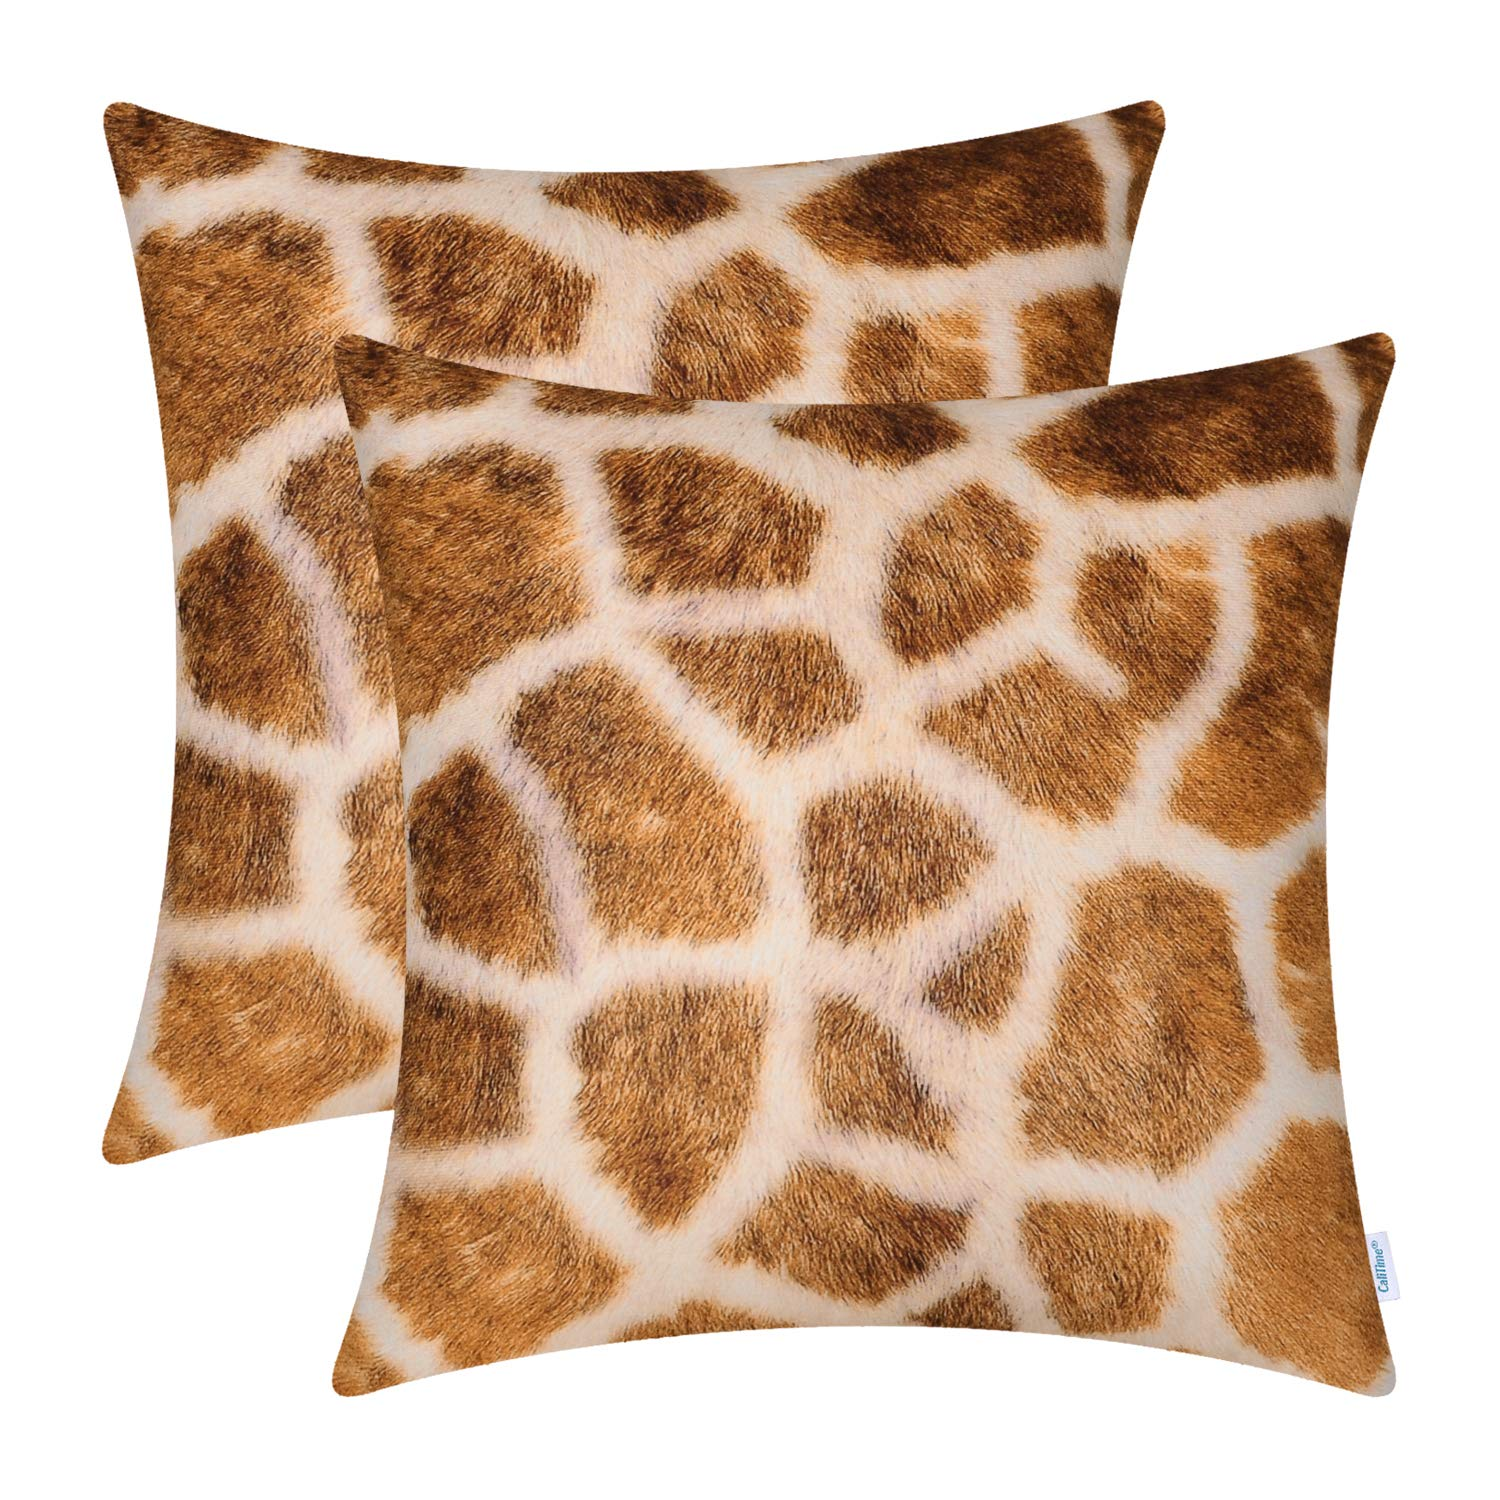 CaliTime Pack of 2 Cozy Fleece Throw Pillow Cases Covers for Couch Bed Sofa Farmhouse Animal Skin Pattern Printed Both Sides 18 X 18 Inches Giraffe